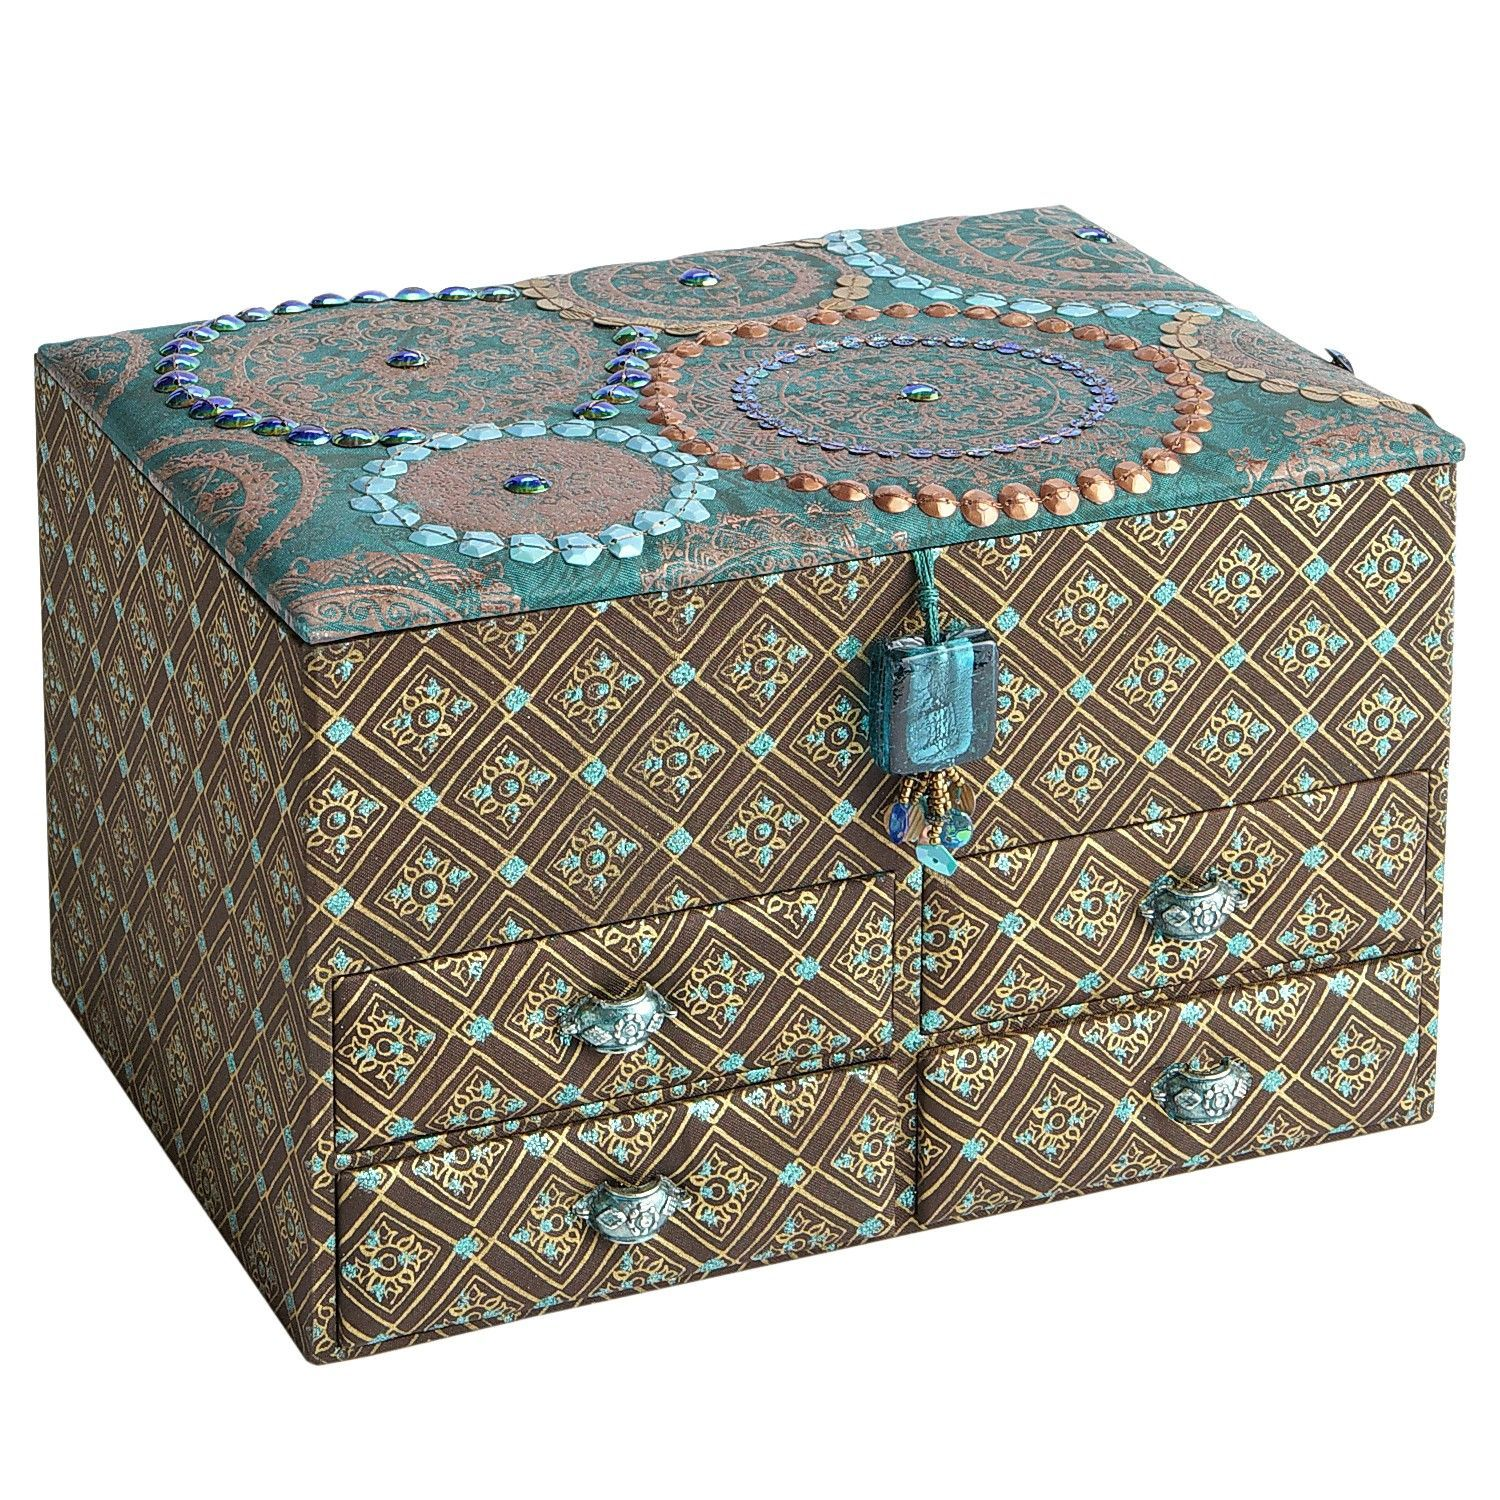 Pier 1 imports Fabric Covered Jewelry Box Karbidboxes